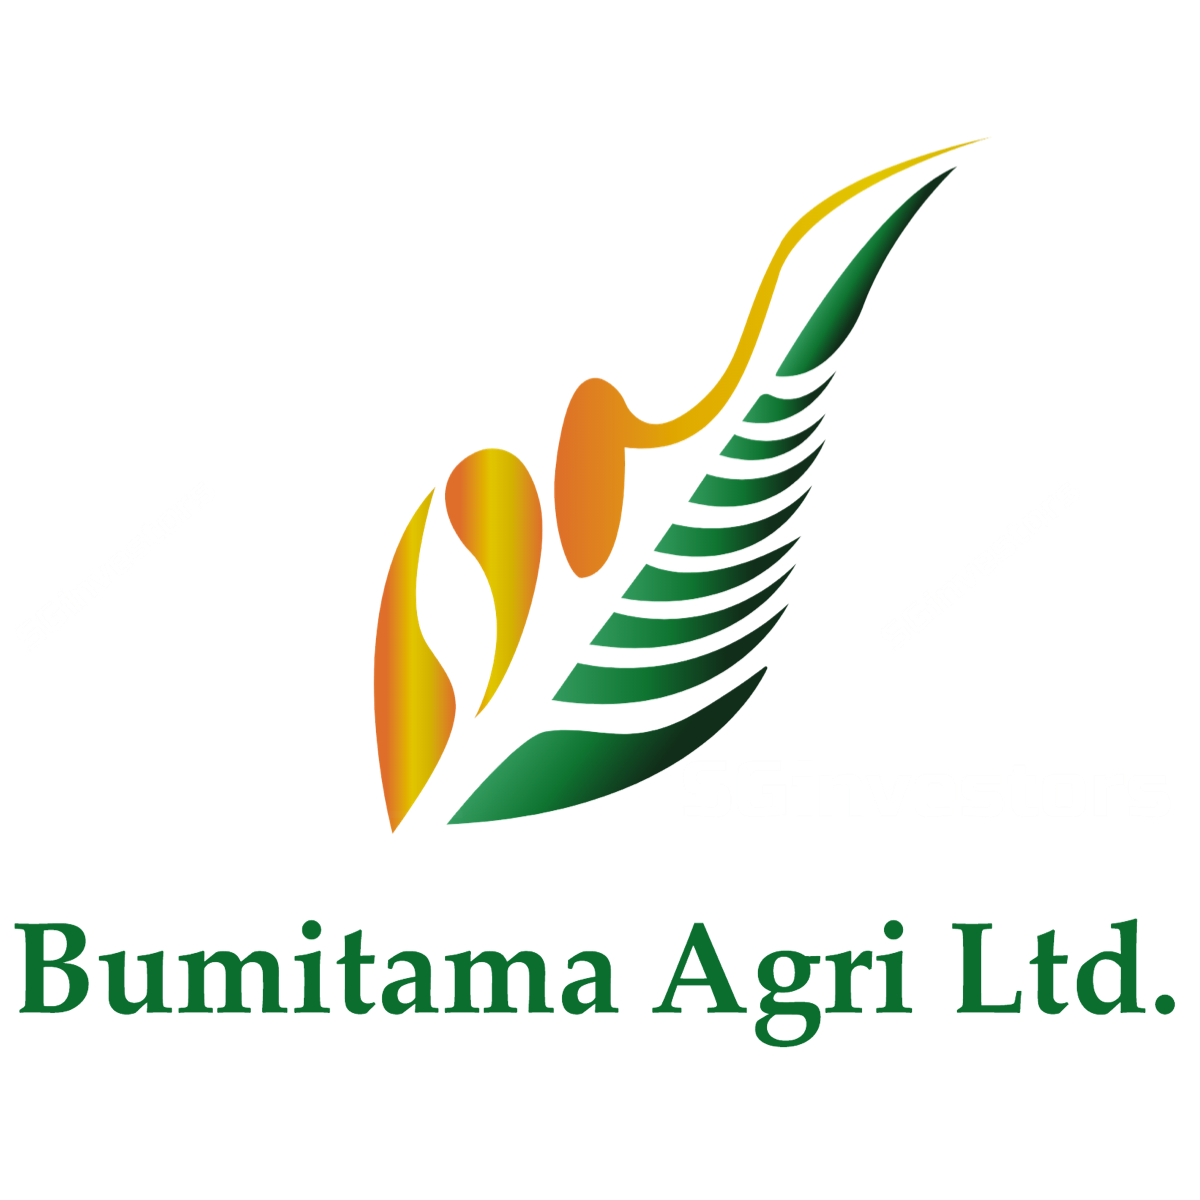 Bumitama Agri - DBS Group Research 2018-08-14: Strong Performance Amid Low Cpo Price Cycle